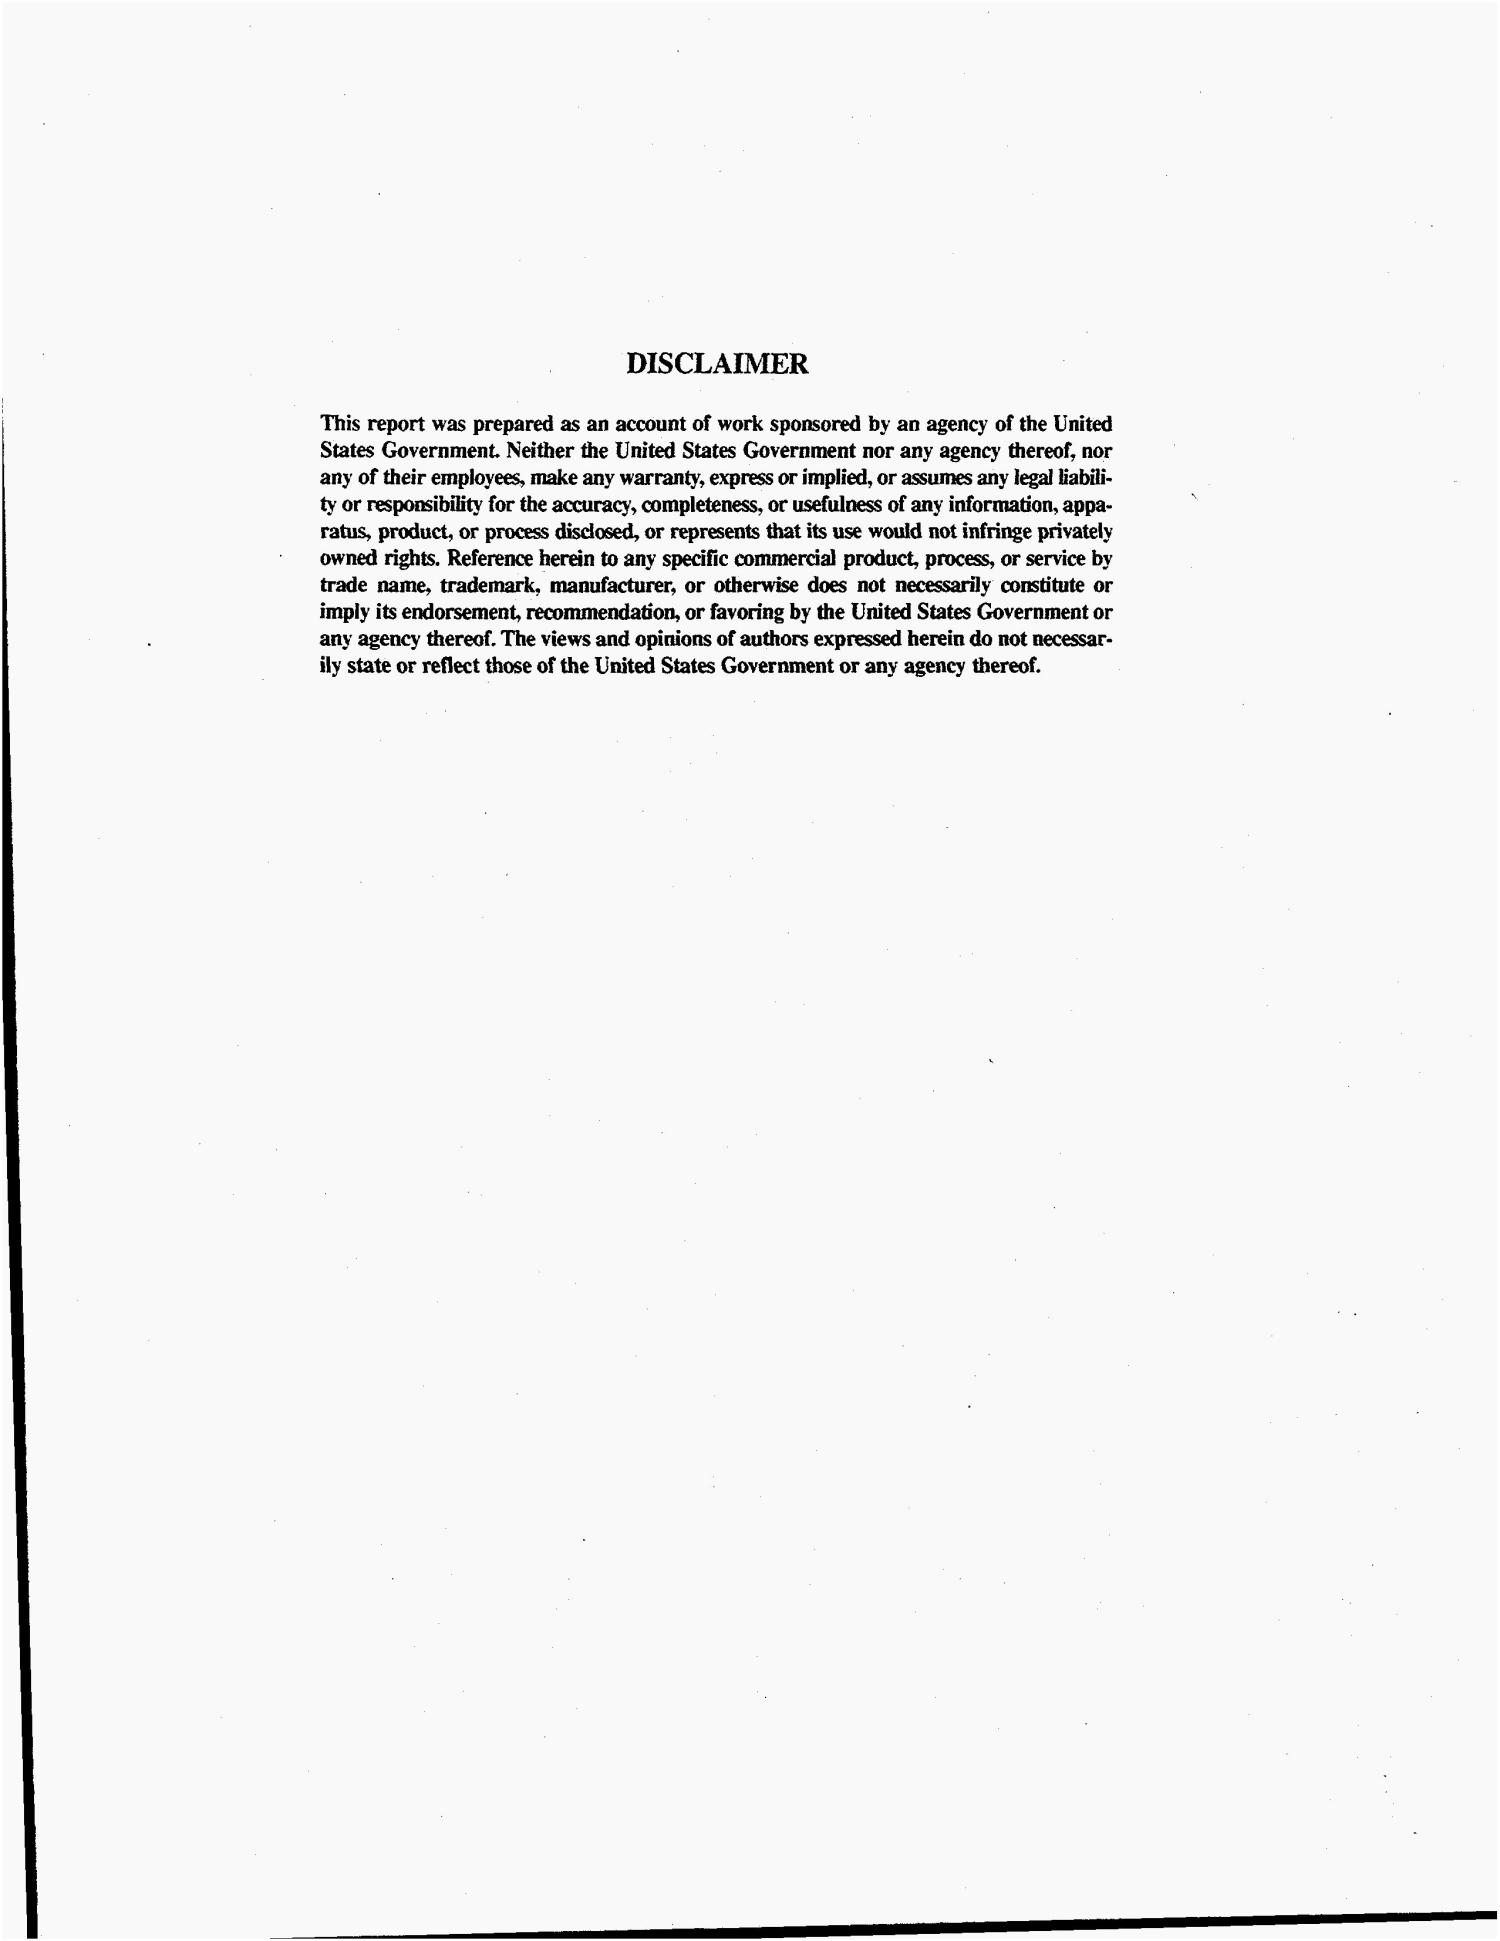 State heating oil and propane program: Final technical report, 1991-92 heating season, Minnesota Department of Public Service                                                                                                      [Sequence #]: 2 of 7